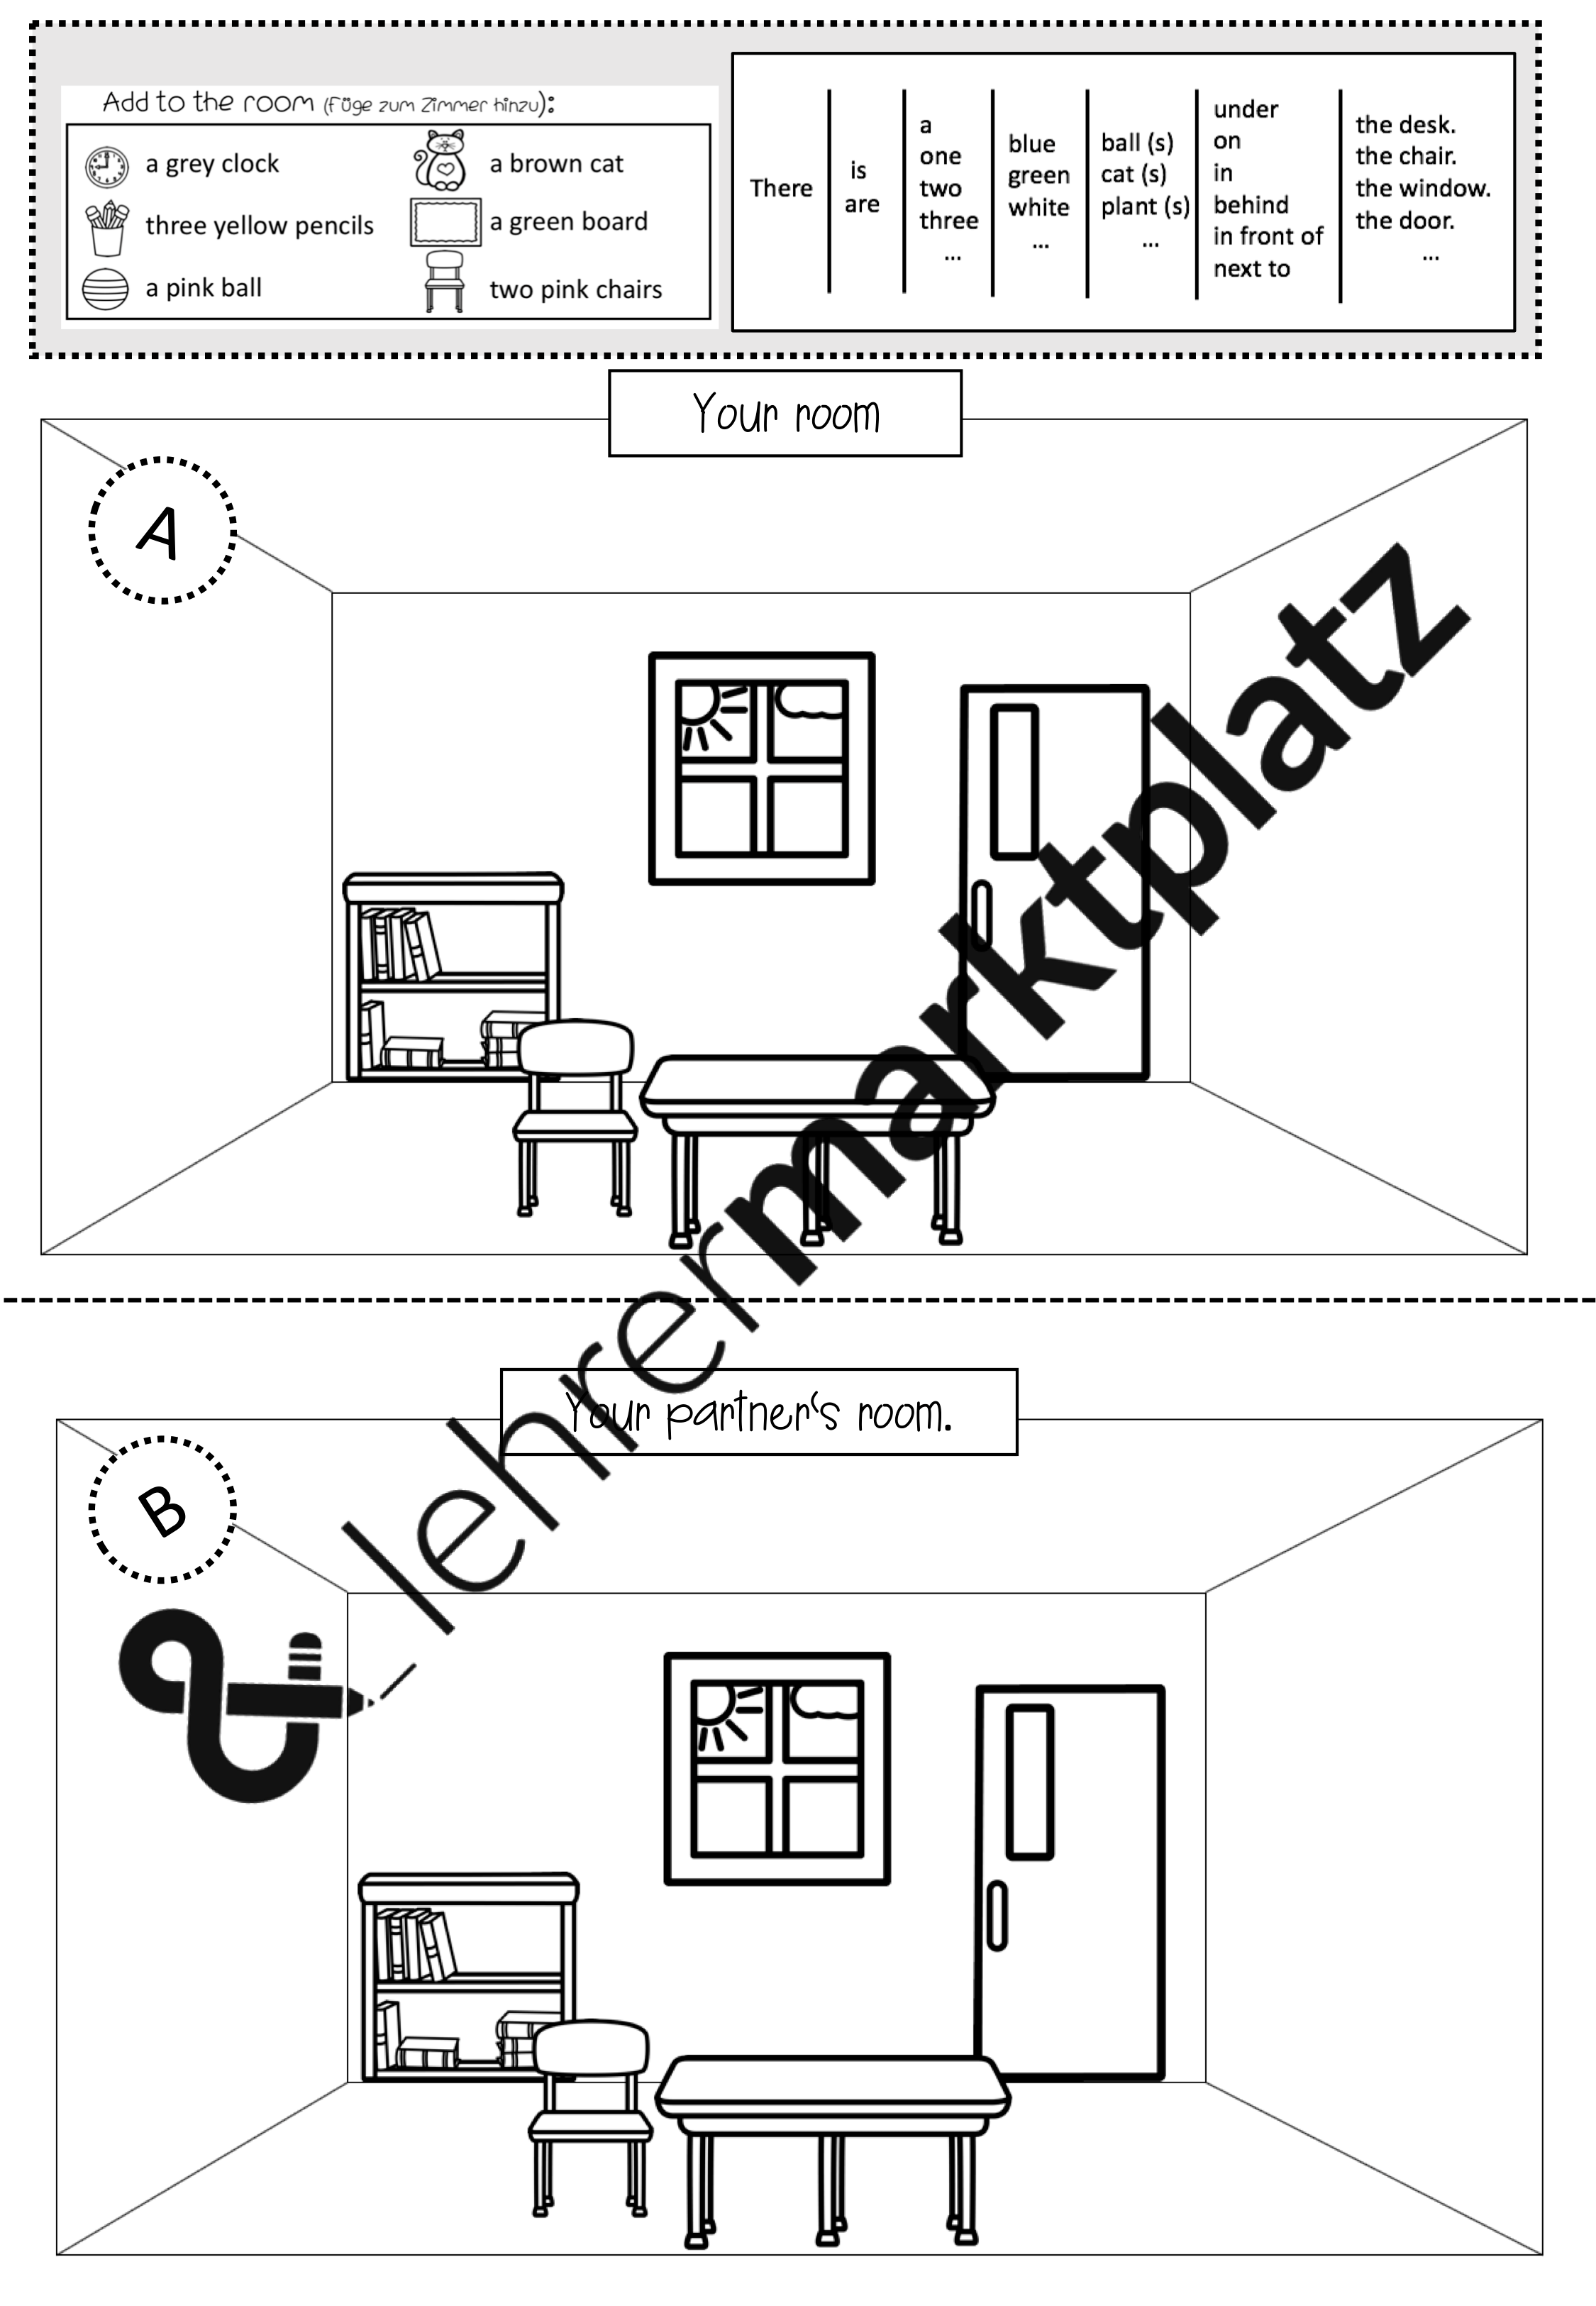 There Is There Are Merkblatt Worksheet Picture For Whiteboards Reading Speaking Practice